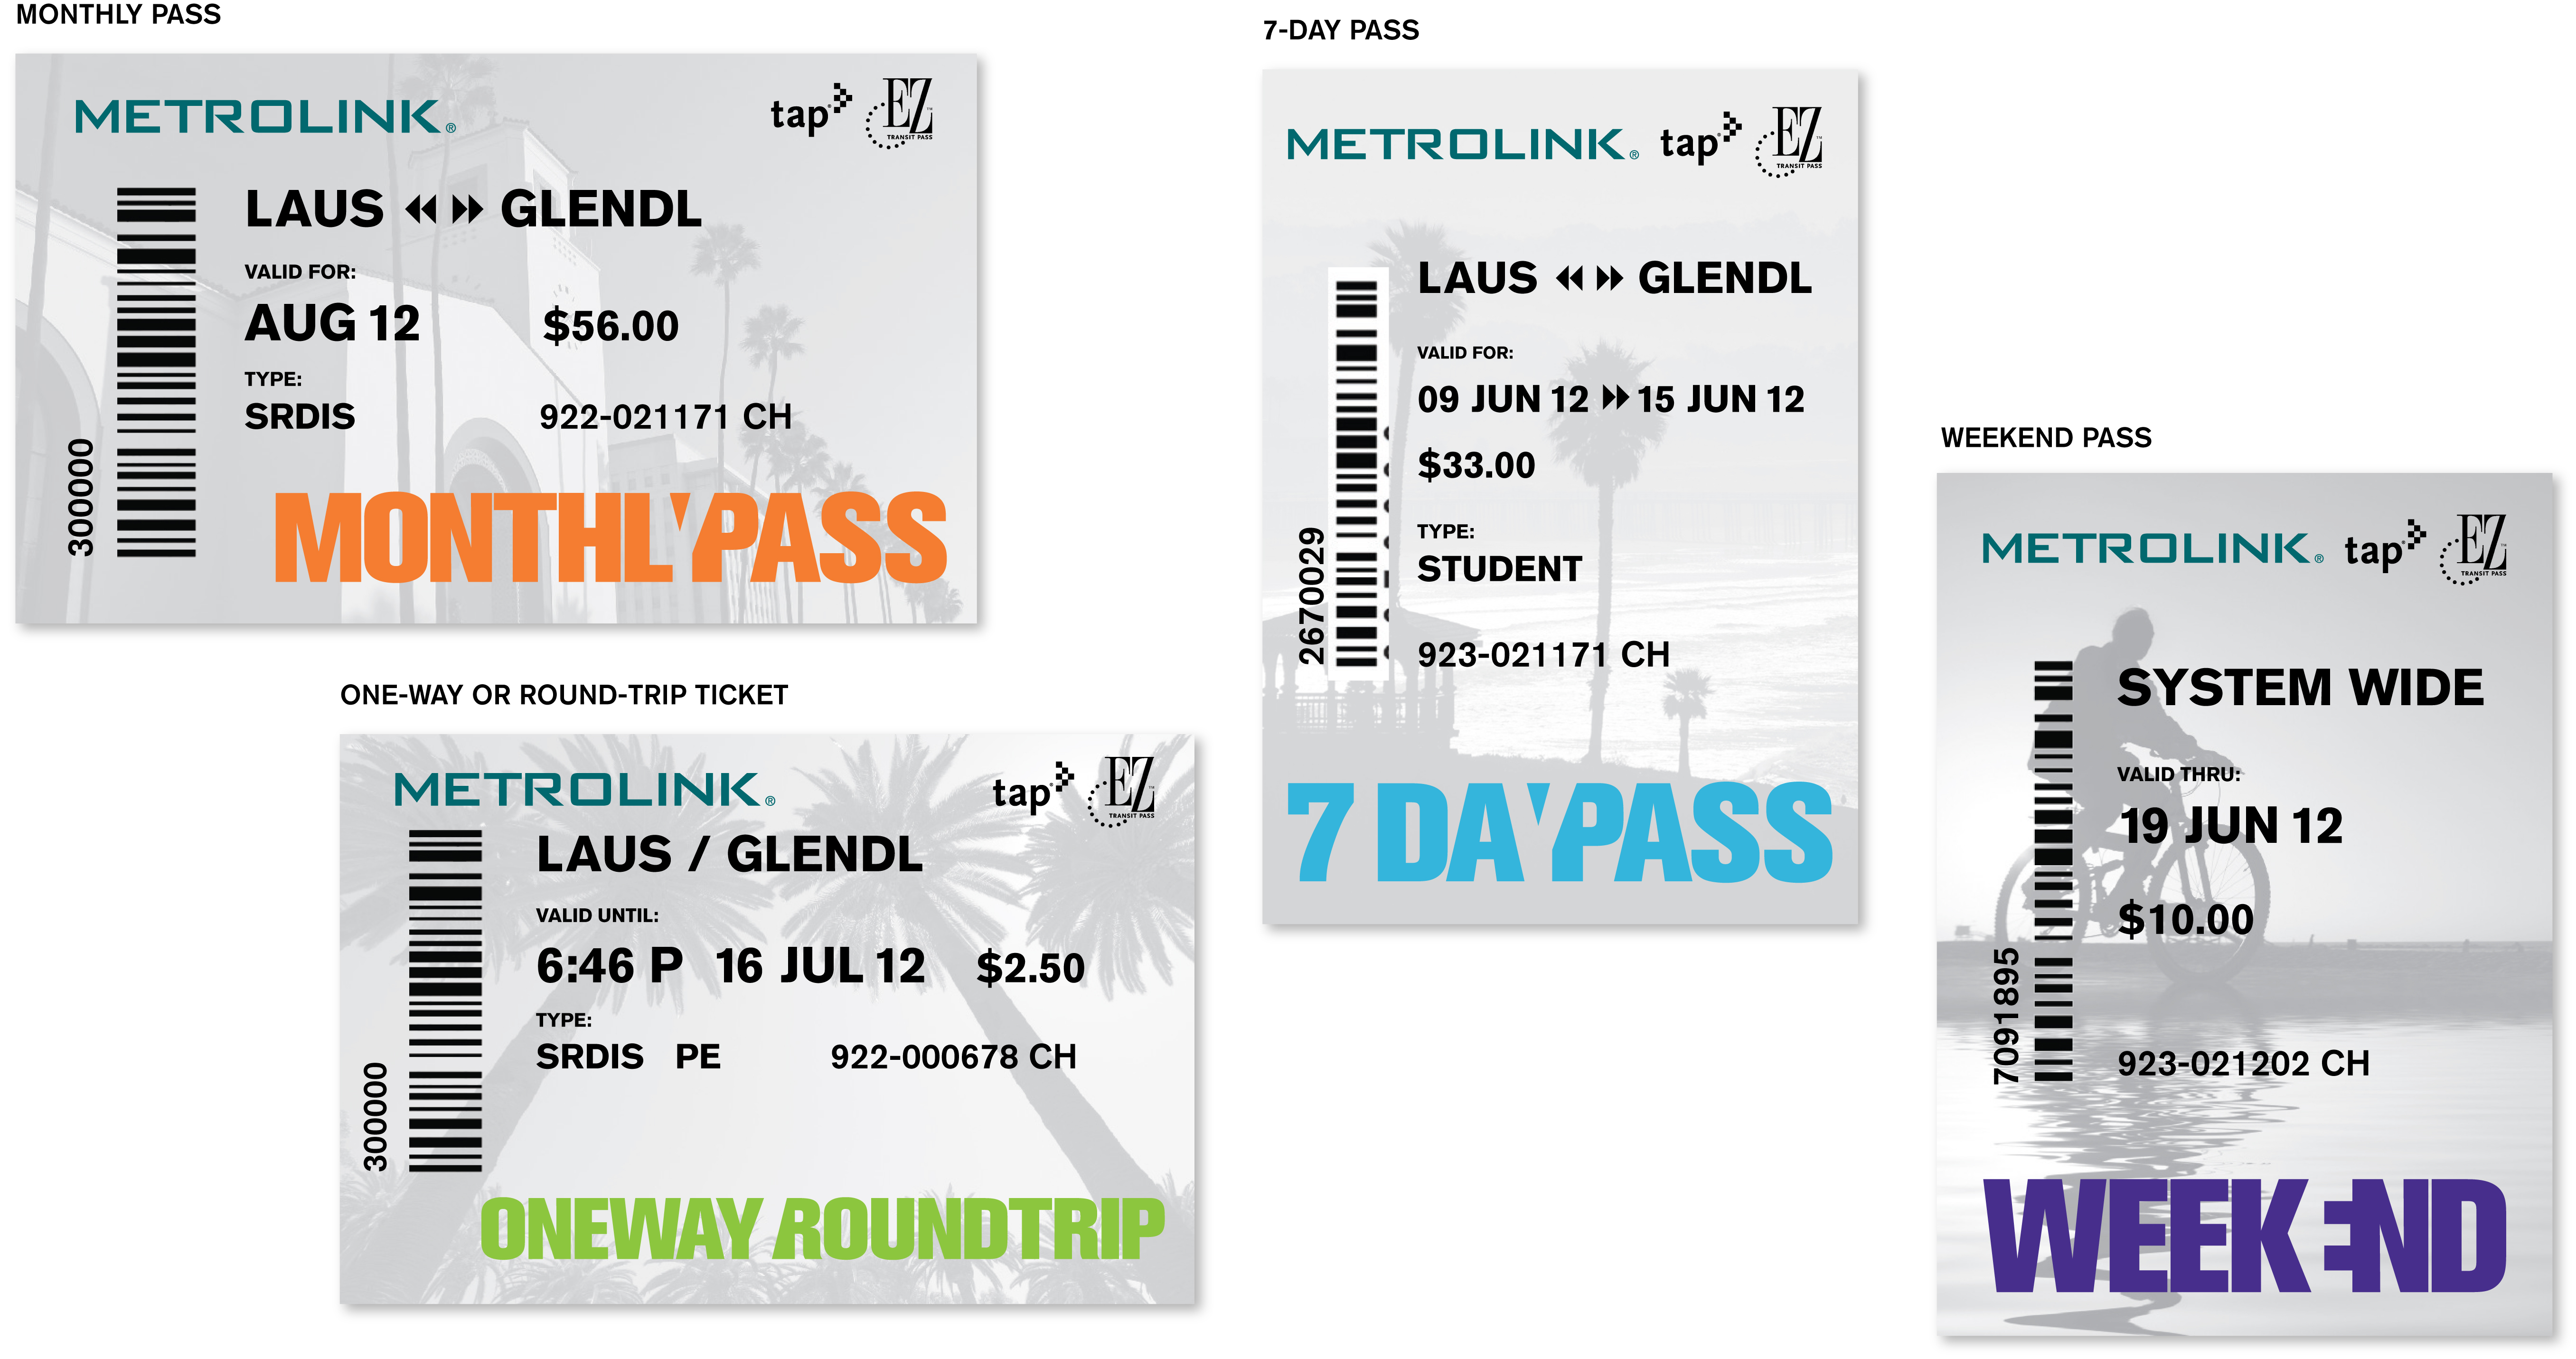 Monthly Pass, One way or Round Trip, 7-Day and Weekend Pass with the Tap logo in the upper left hand corner